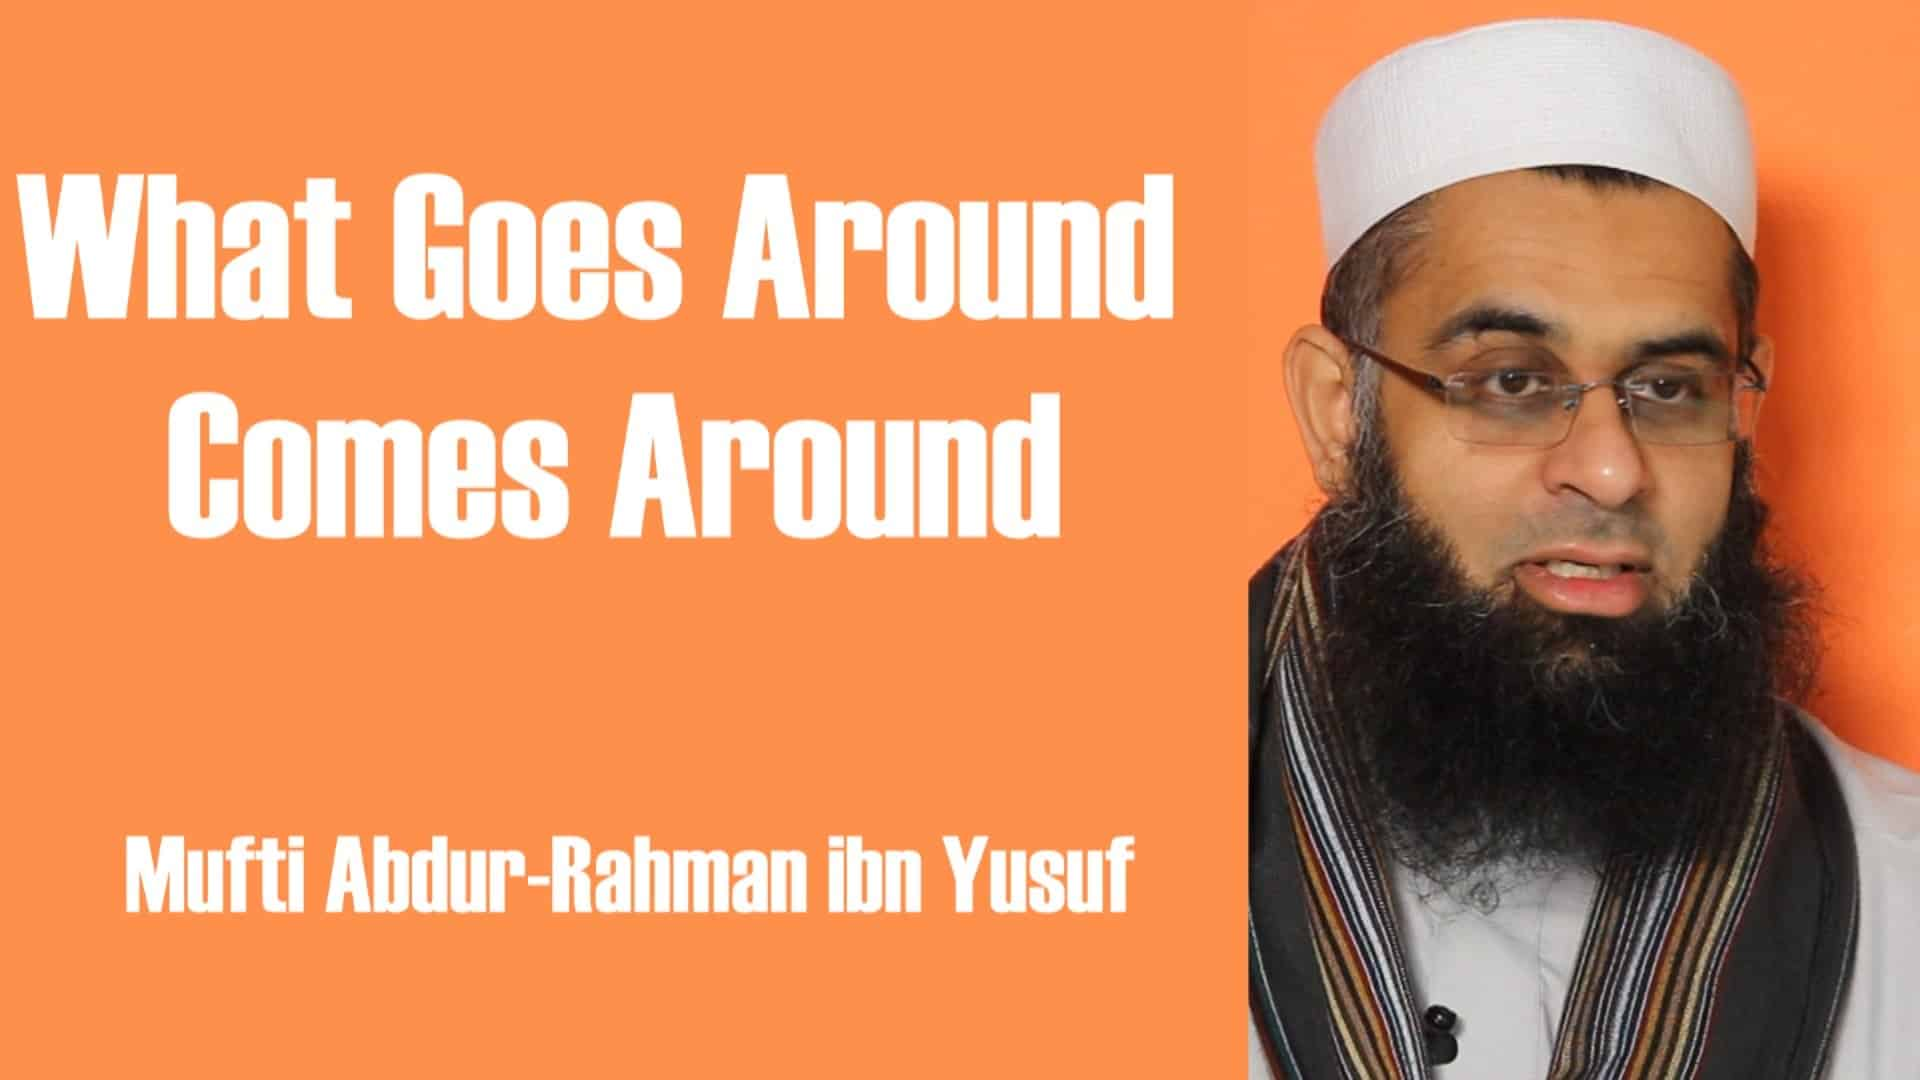 Abdur-Rahman ibn Yusuf – What Goes Around Comes Around